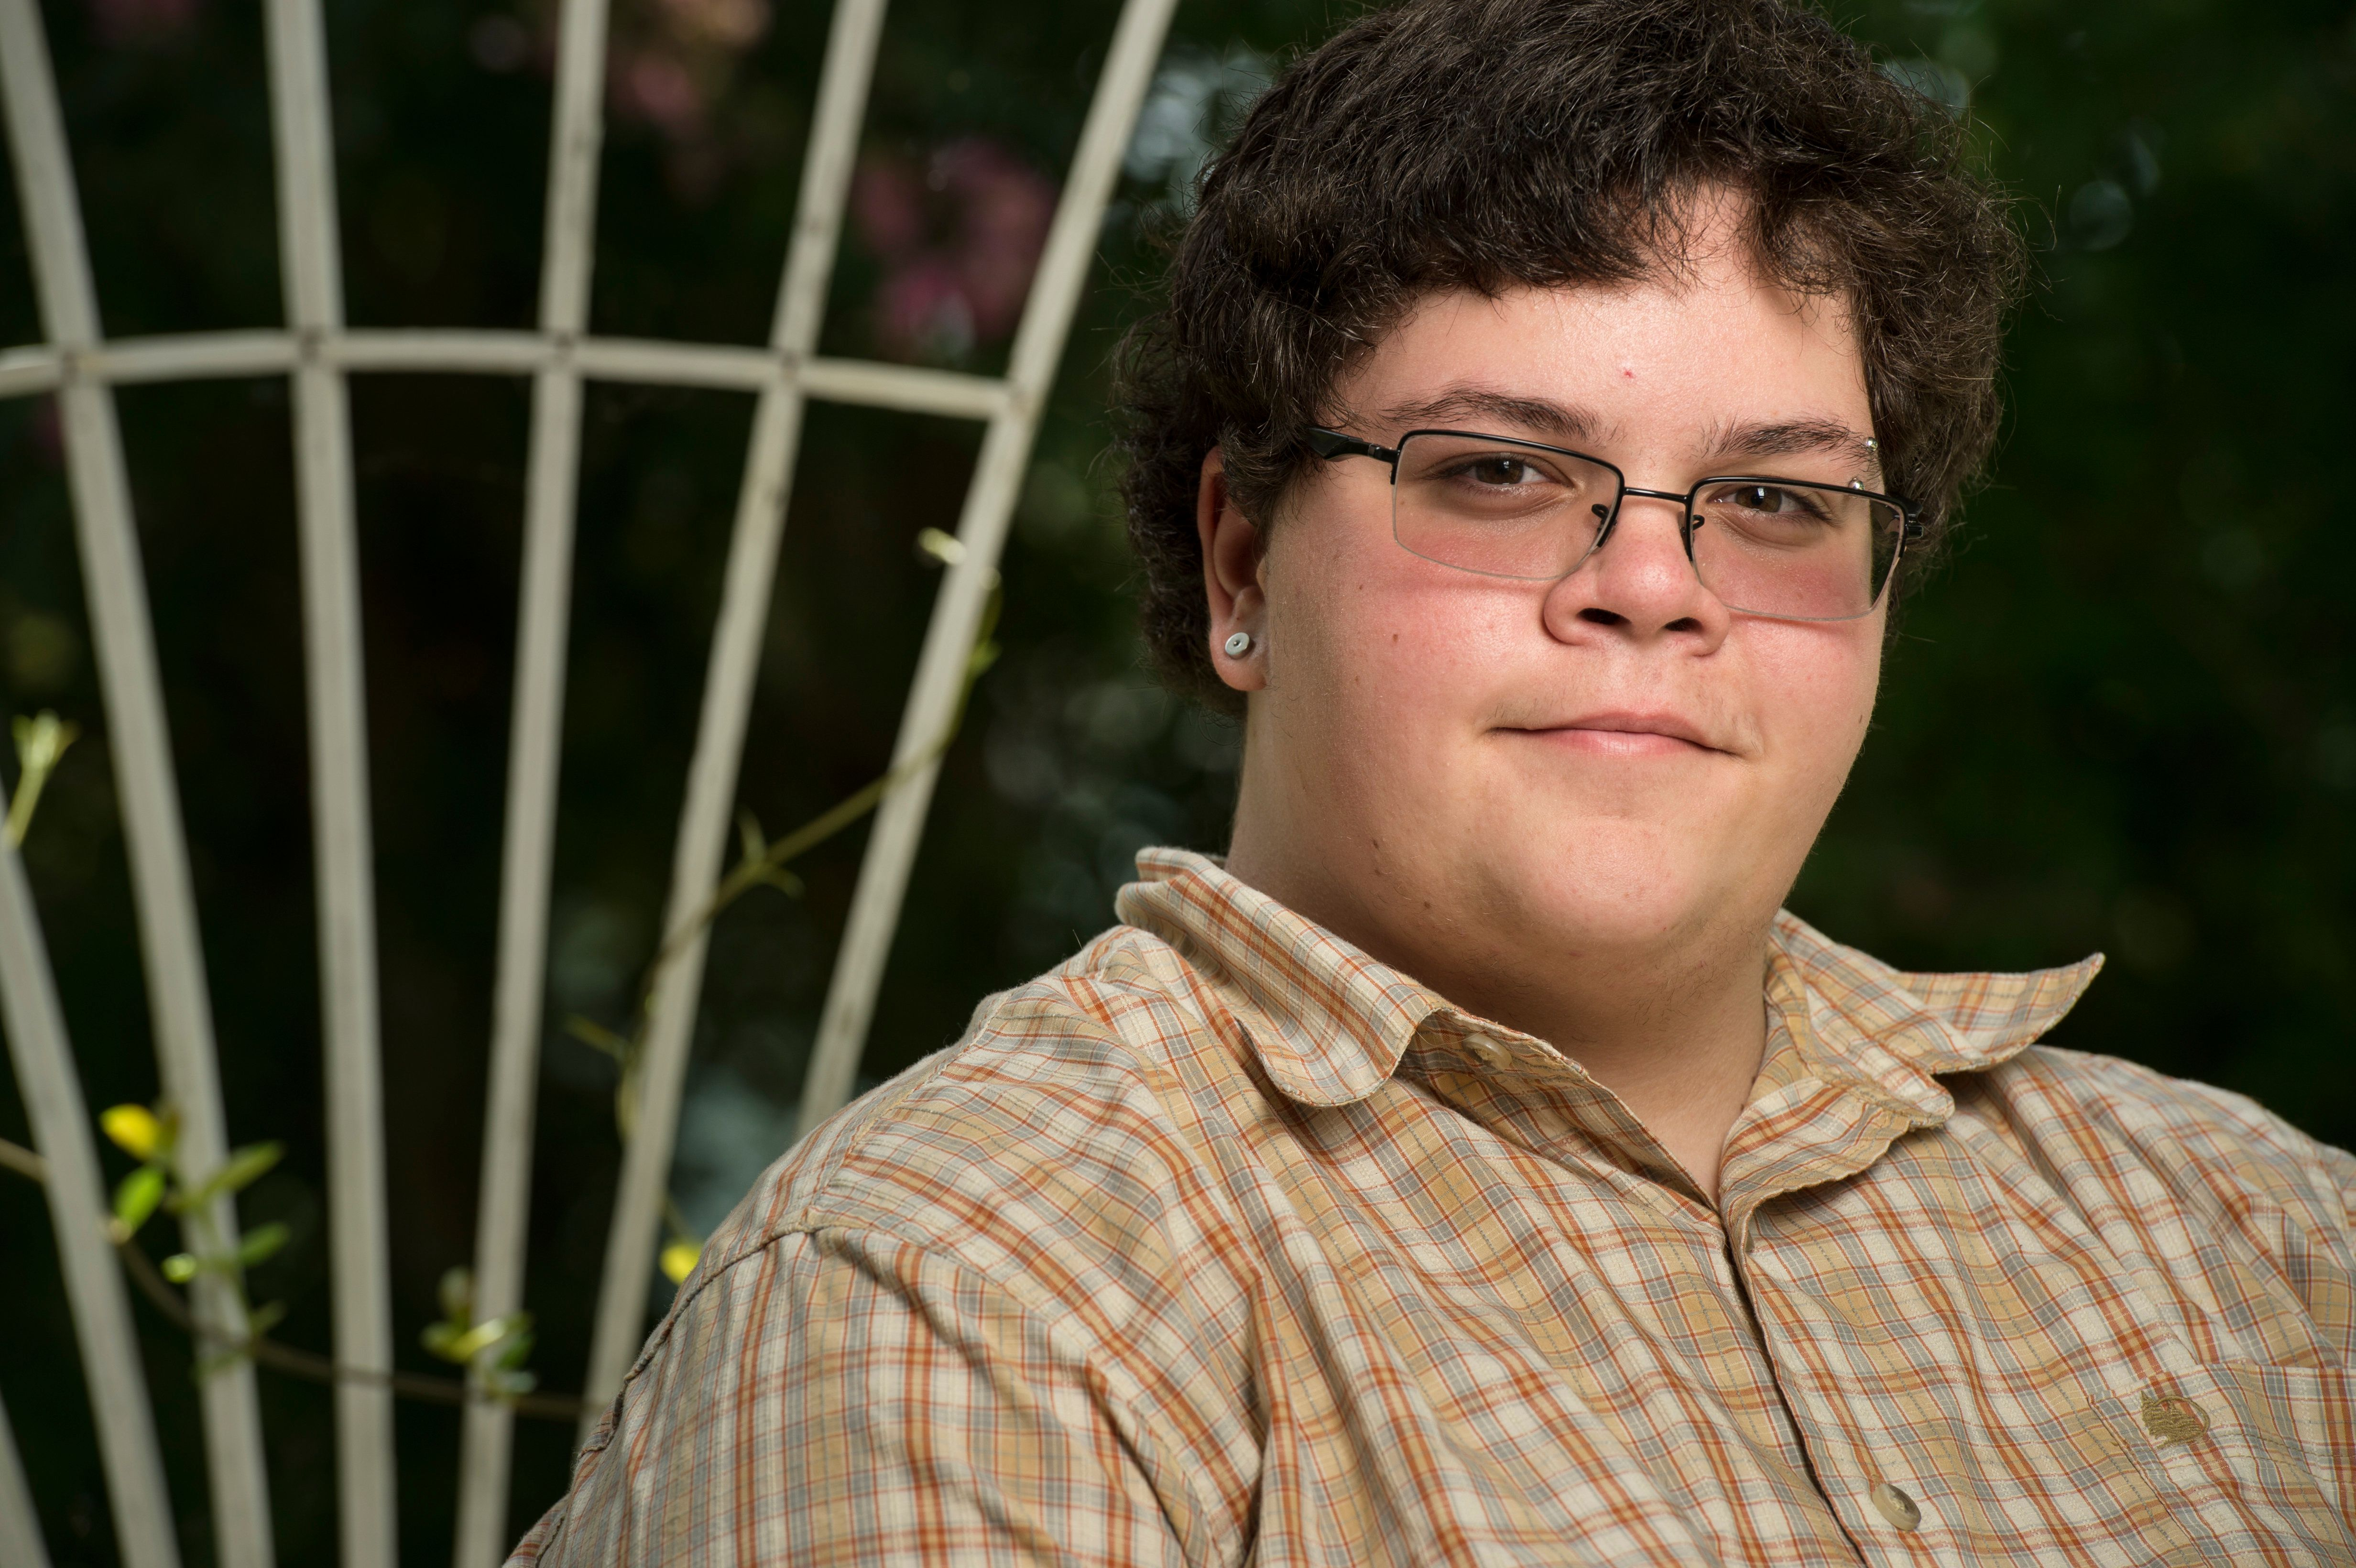 GLOUCESTER, VA --  AUGUST 21: Gavin Grimm, 17, is photographed at his home in Gloucester, Virginia, on Sunday, August 21, 2016. The transgender teen sued the Gloucester County School Board after it barred him from the boys' bathroom.  (Photo by Nikki Kahn/The Washington Post via Getty Images)